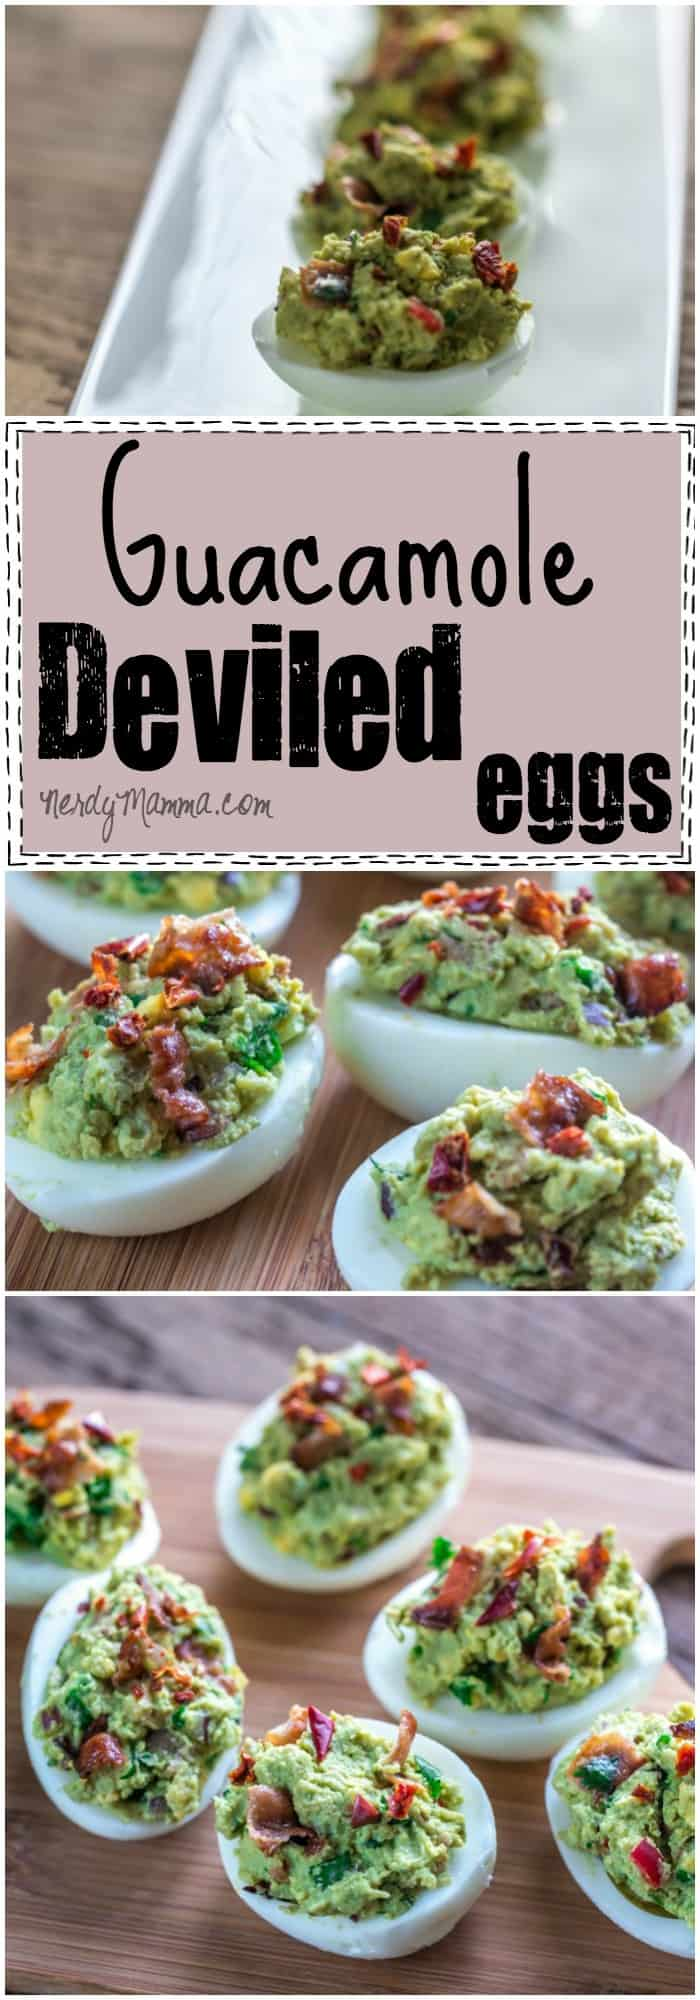 I love this recipe for healthy deviled eggs!